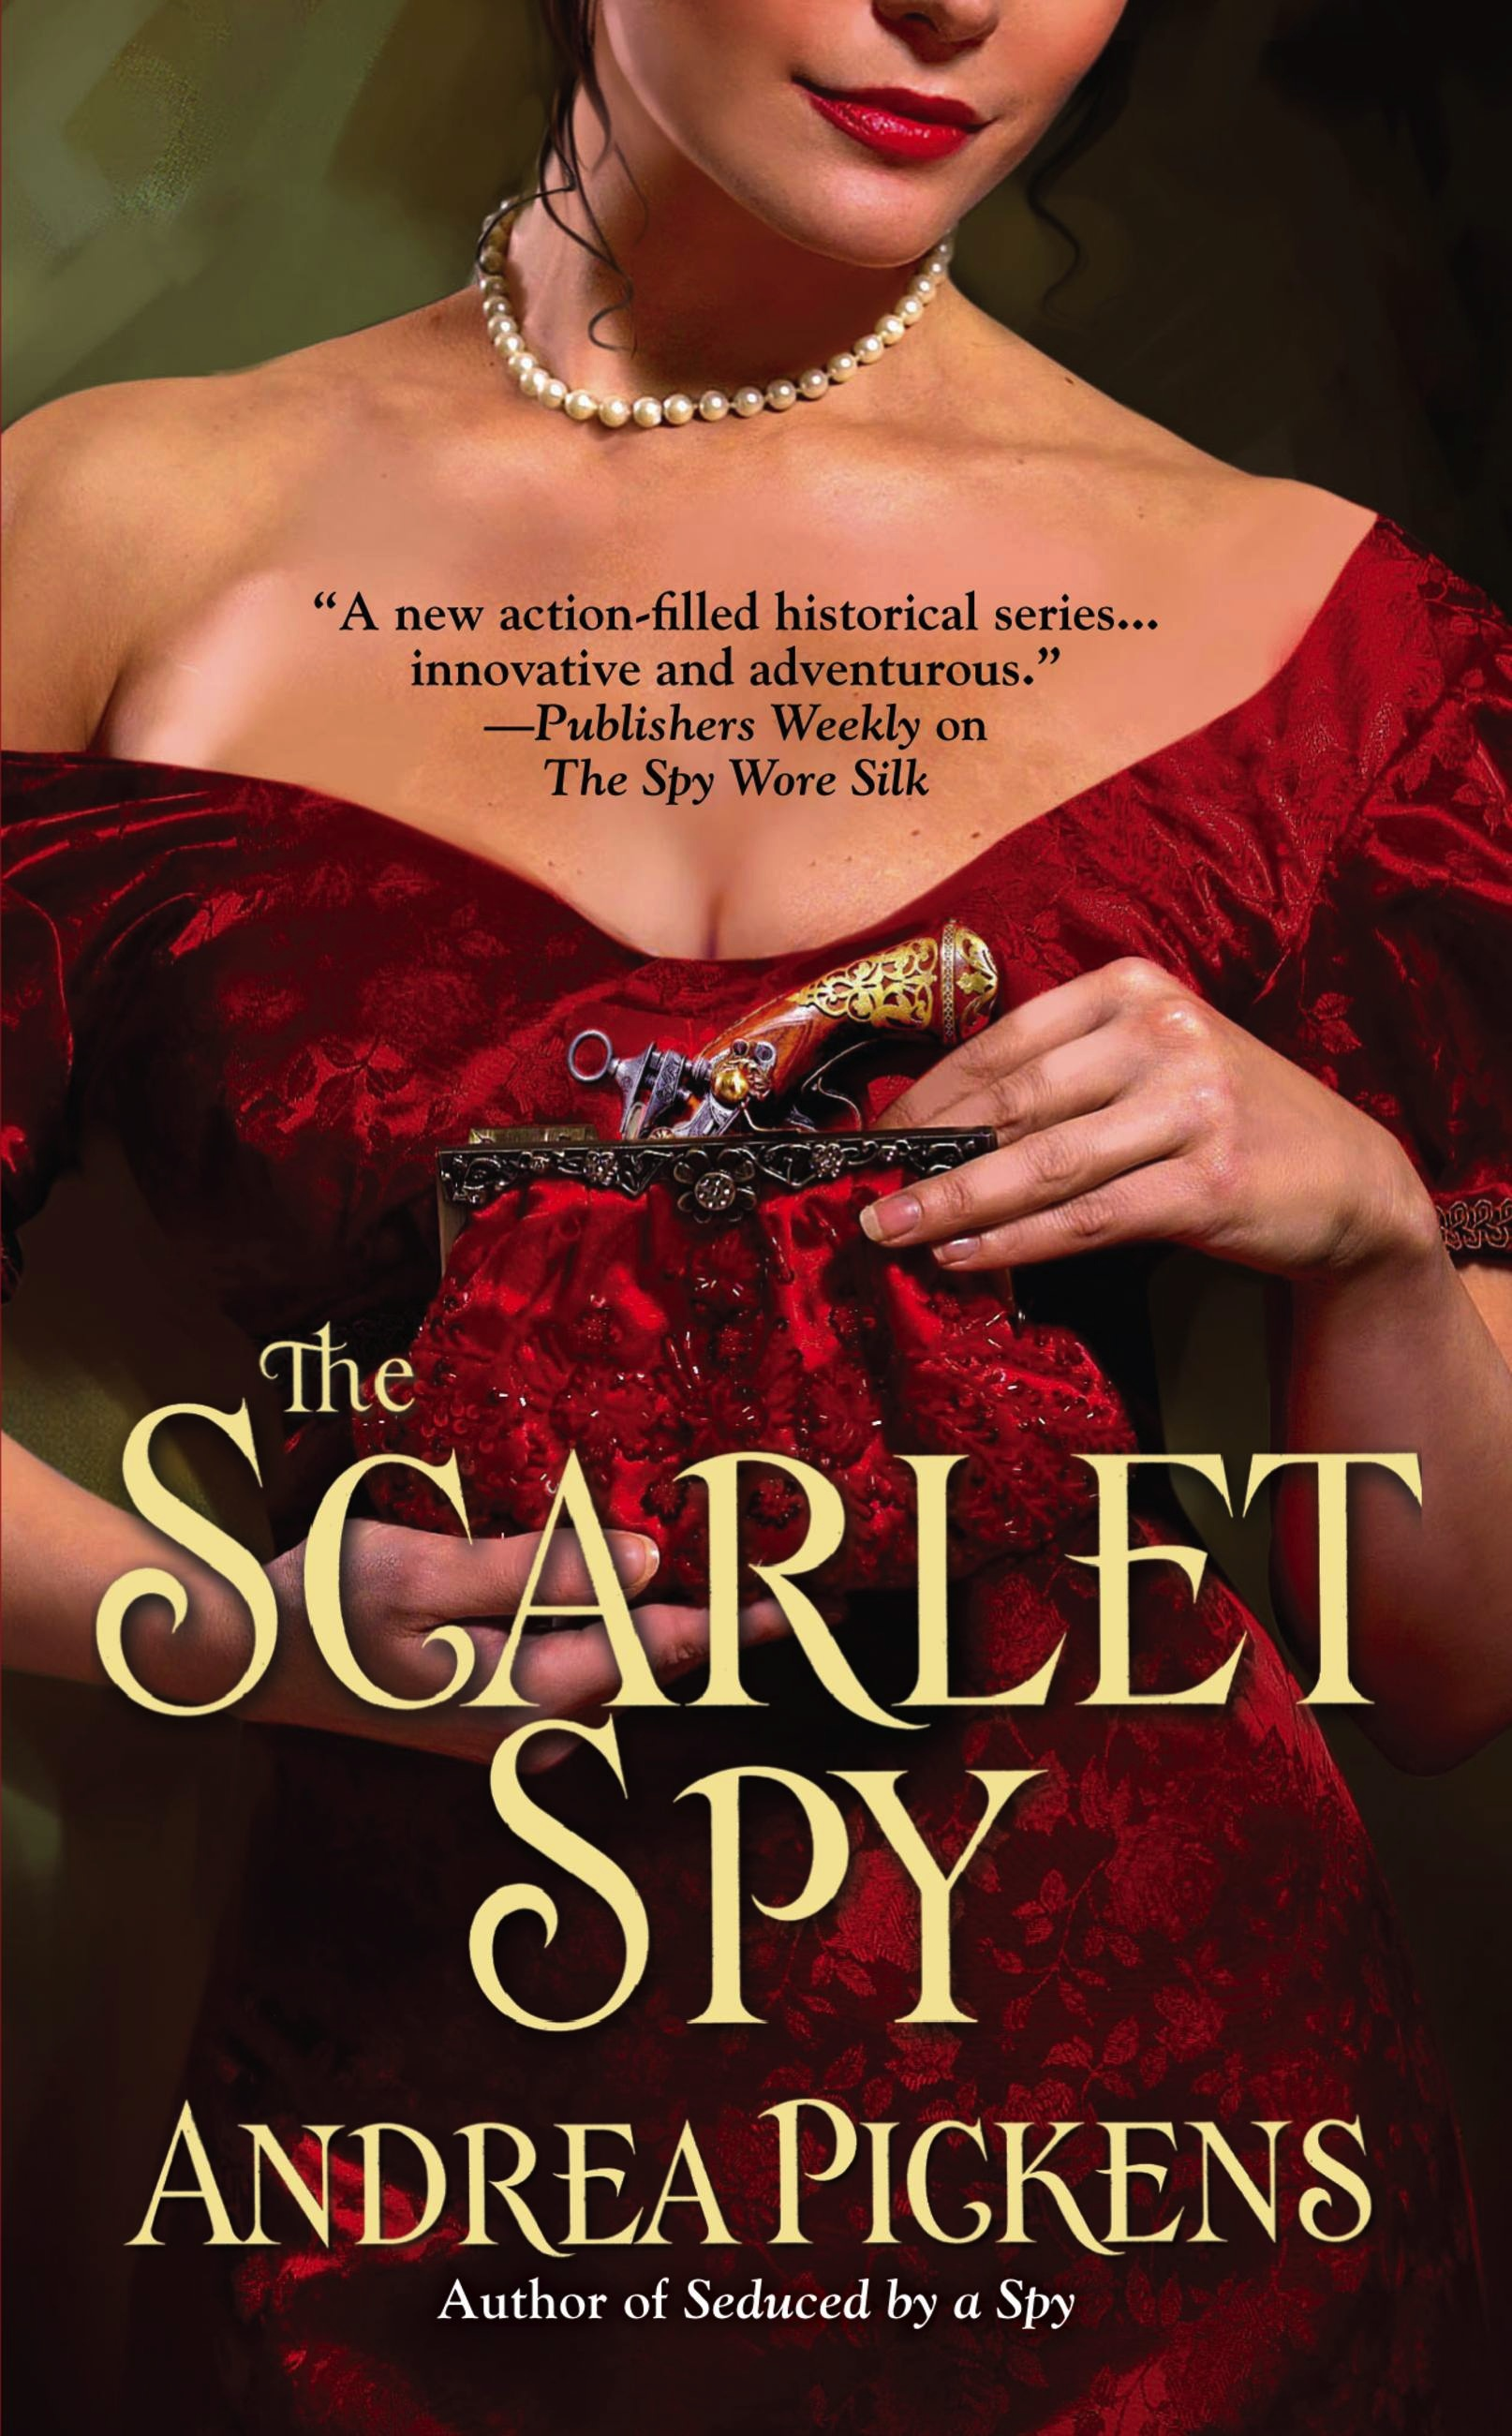 The Scarlet Spy